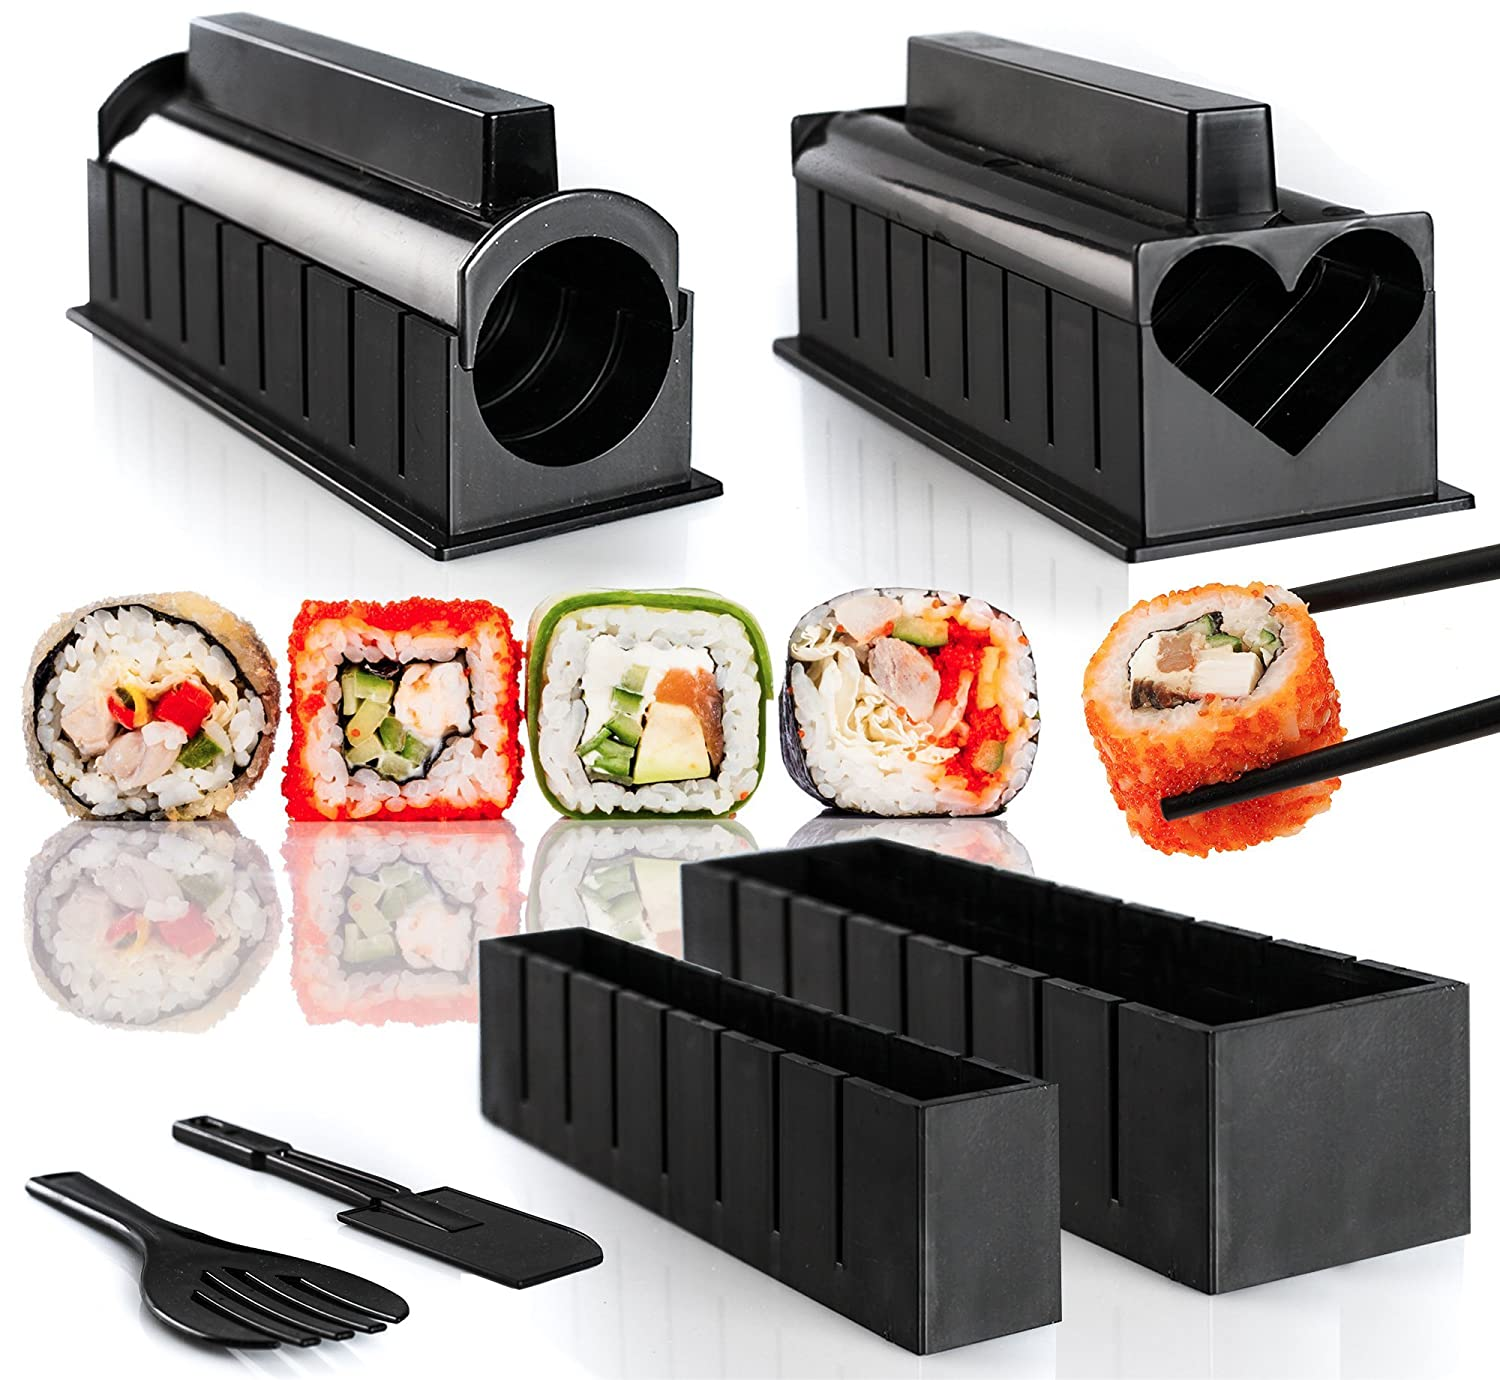 Sushi Making Kit with 6 Cute Shapes, Your First Sushi Step-By-Step Instructions Included, Sushi Maker Used in Restaurants, Rice Mold Set for Beginners by WeLoveCooking st-2